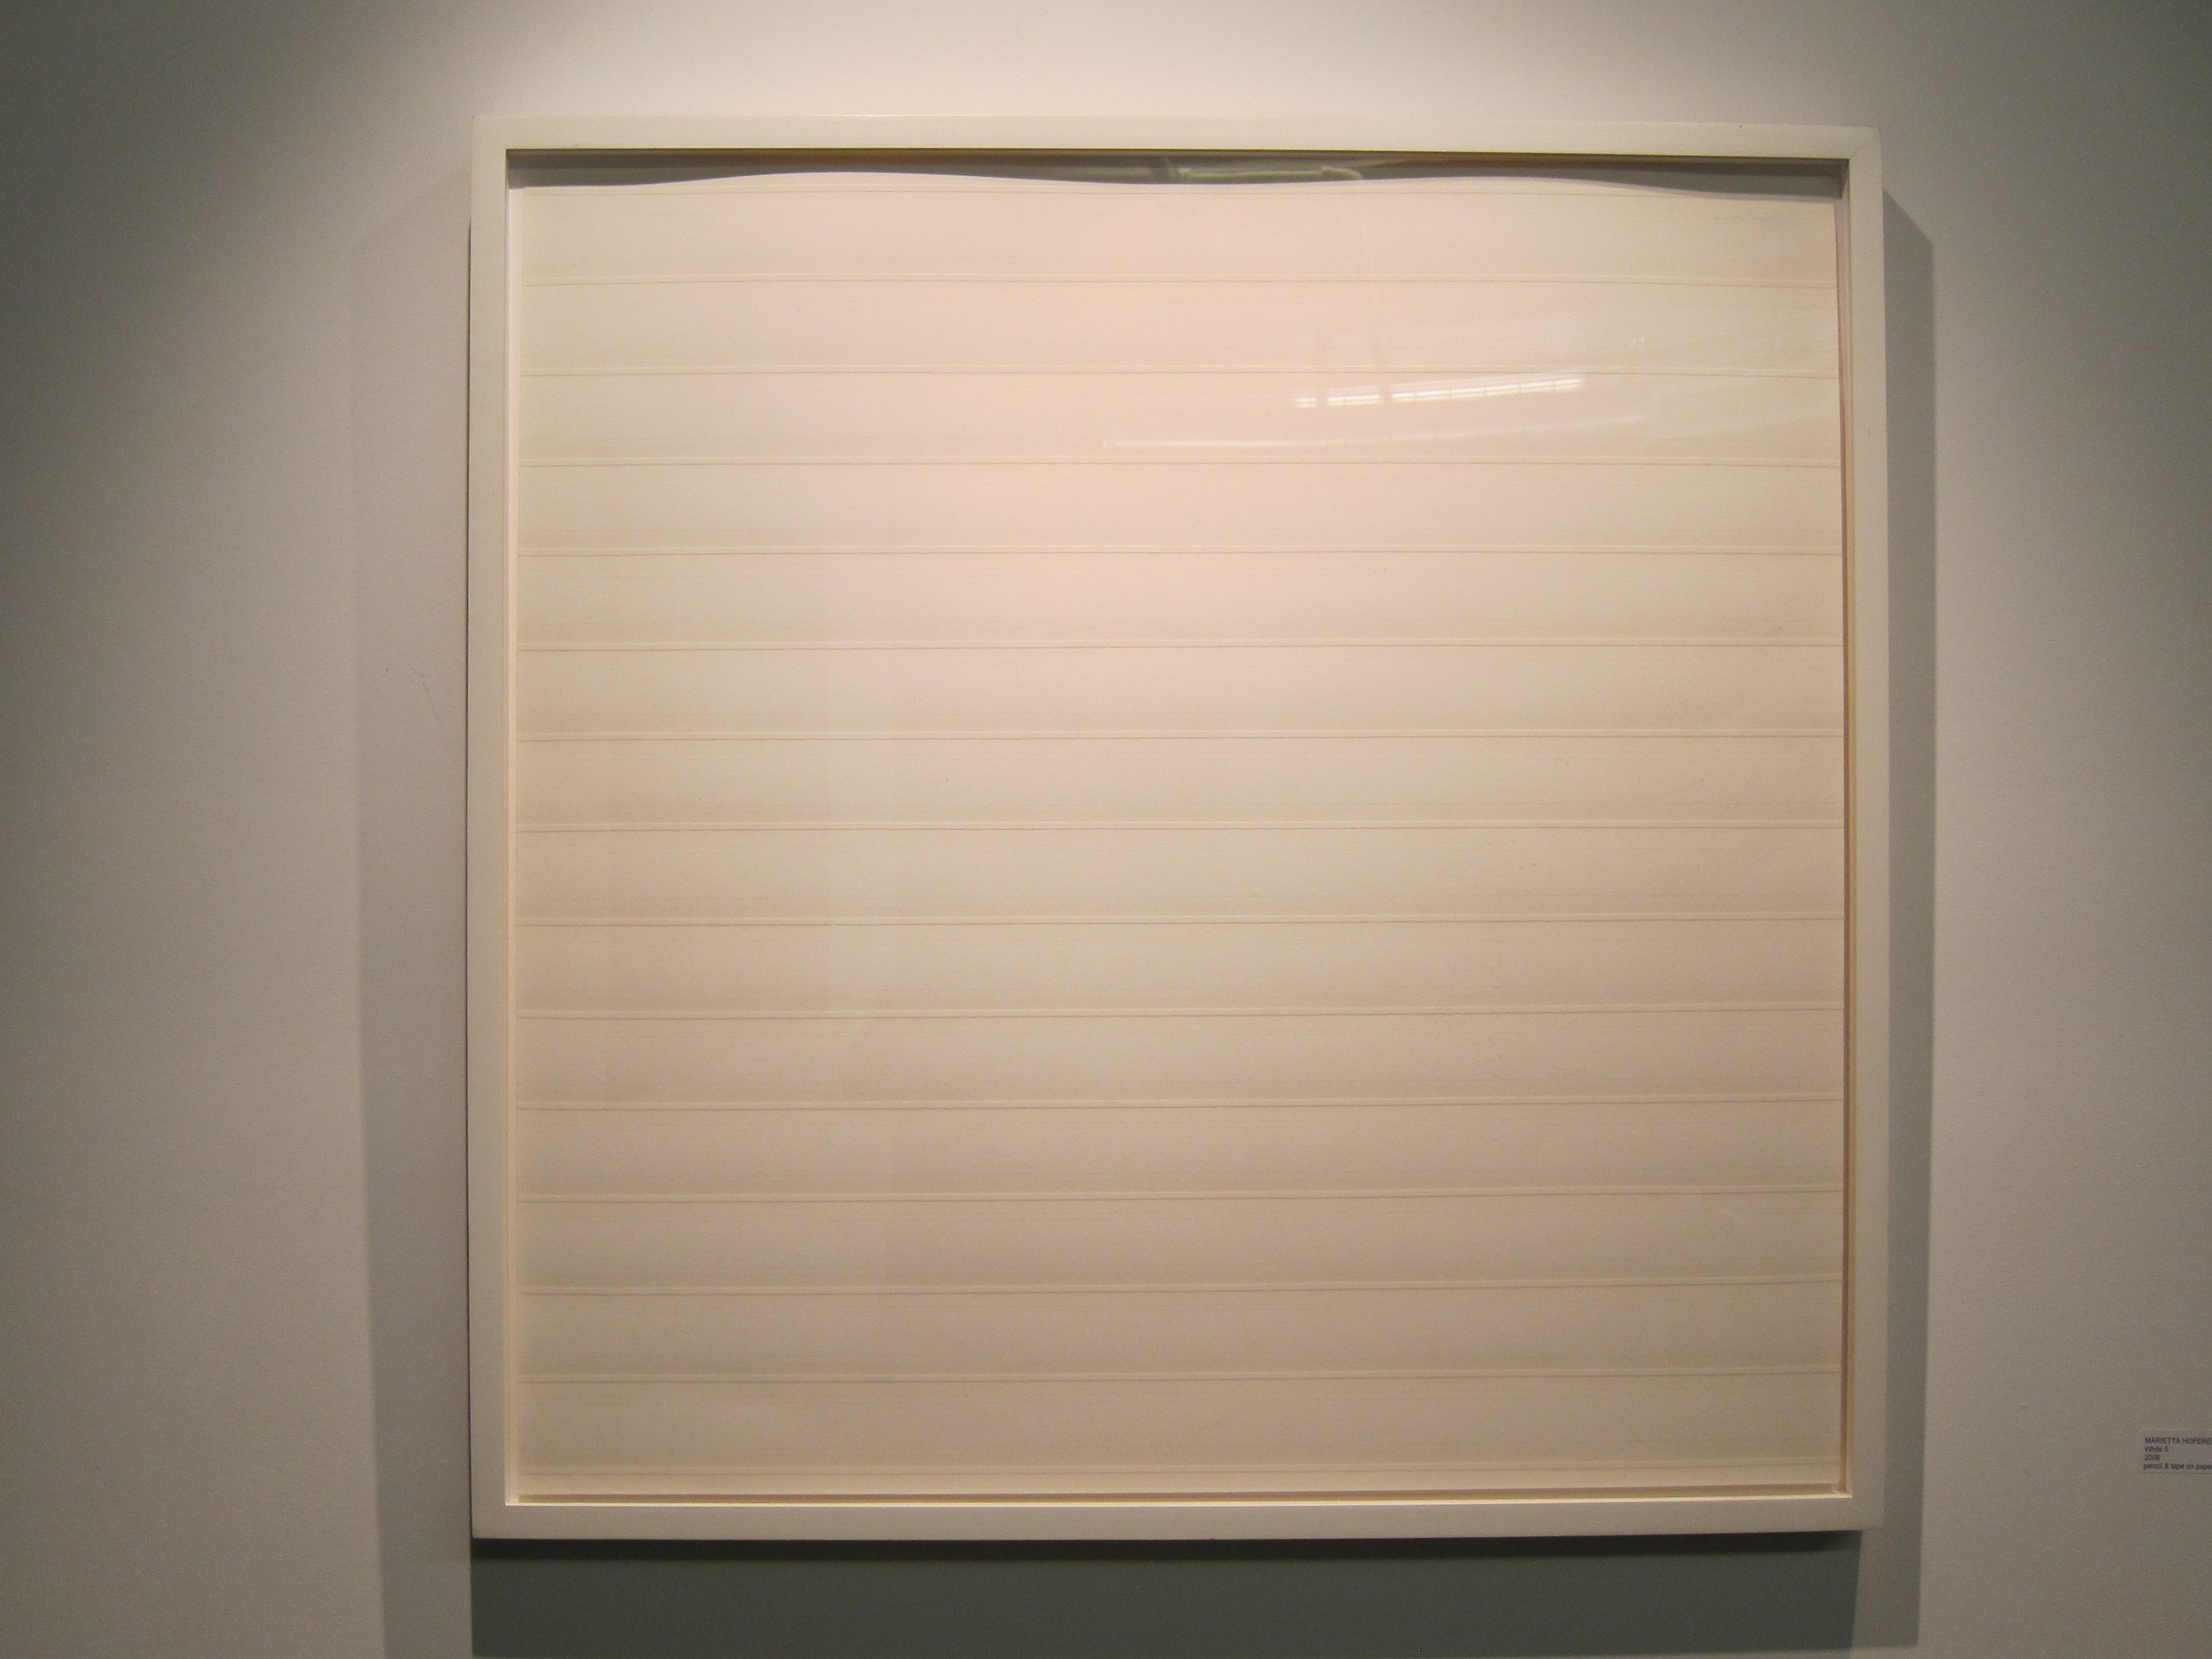 Marietta Hoferer White 5, 2008 Pencil and transparent tape on paper  31x31 inches